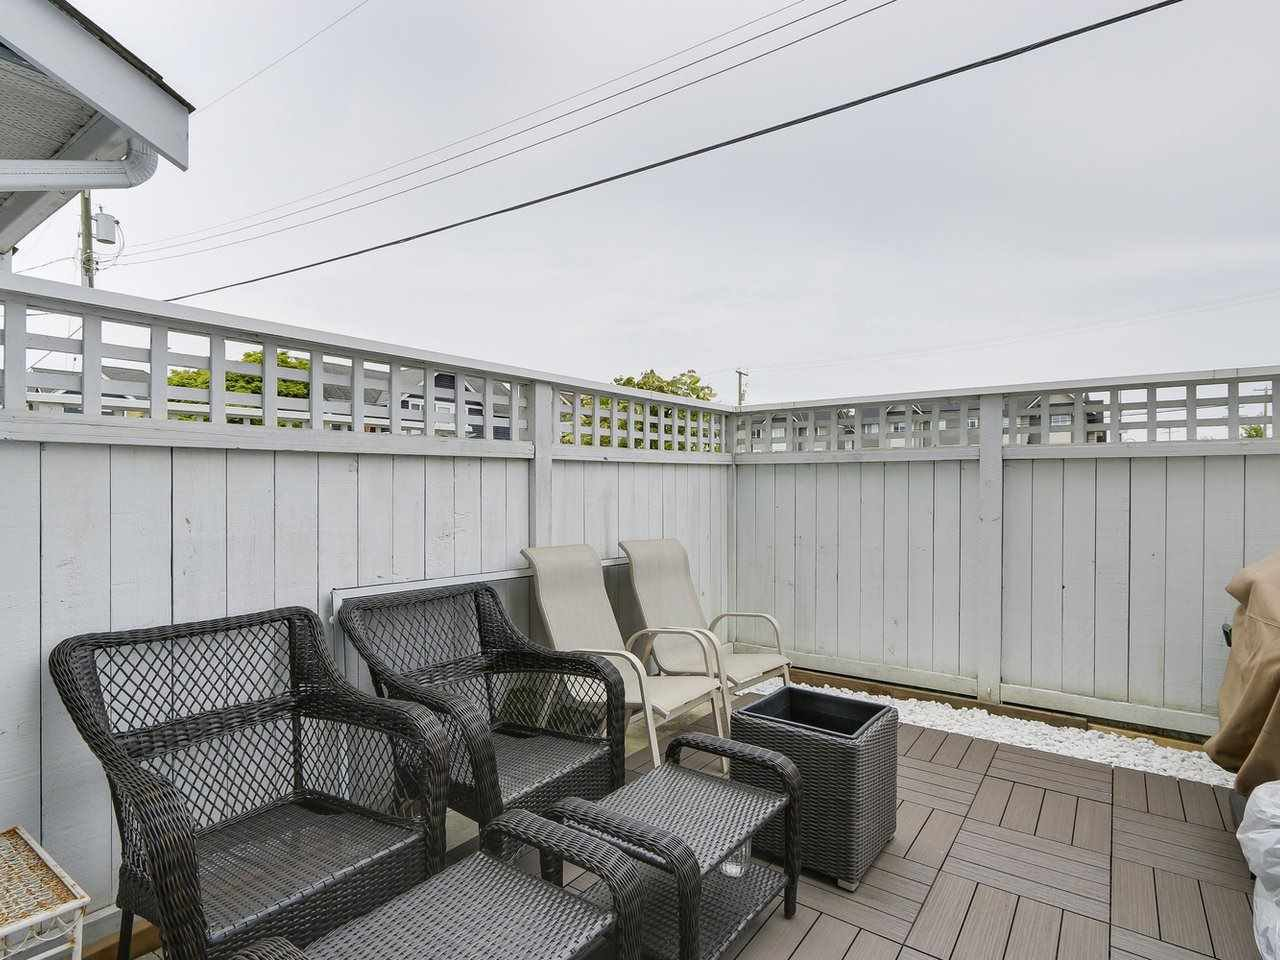 "Photo 18: Photos: 7 4965 47 Avenue in Delta: Ladner Elementary Townhouse for sale in ""PARKVIEW COURT"" (Ladner)  : MLS®# R2163588"